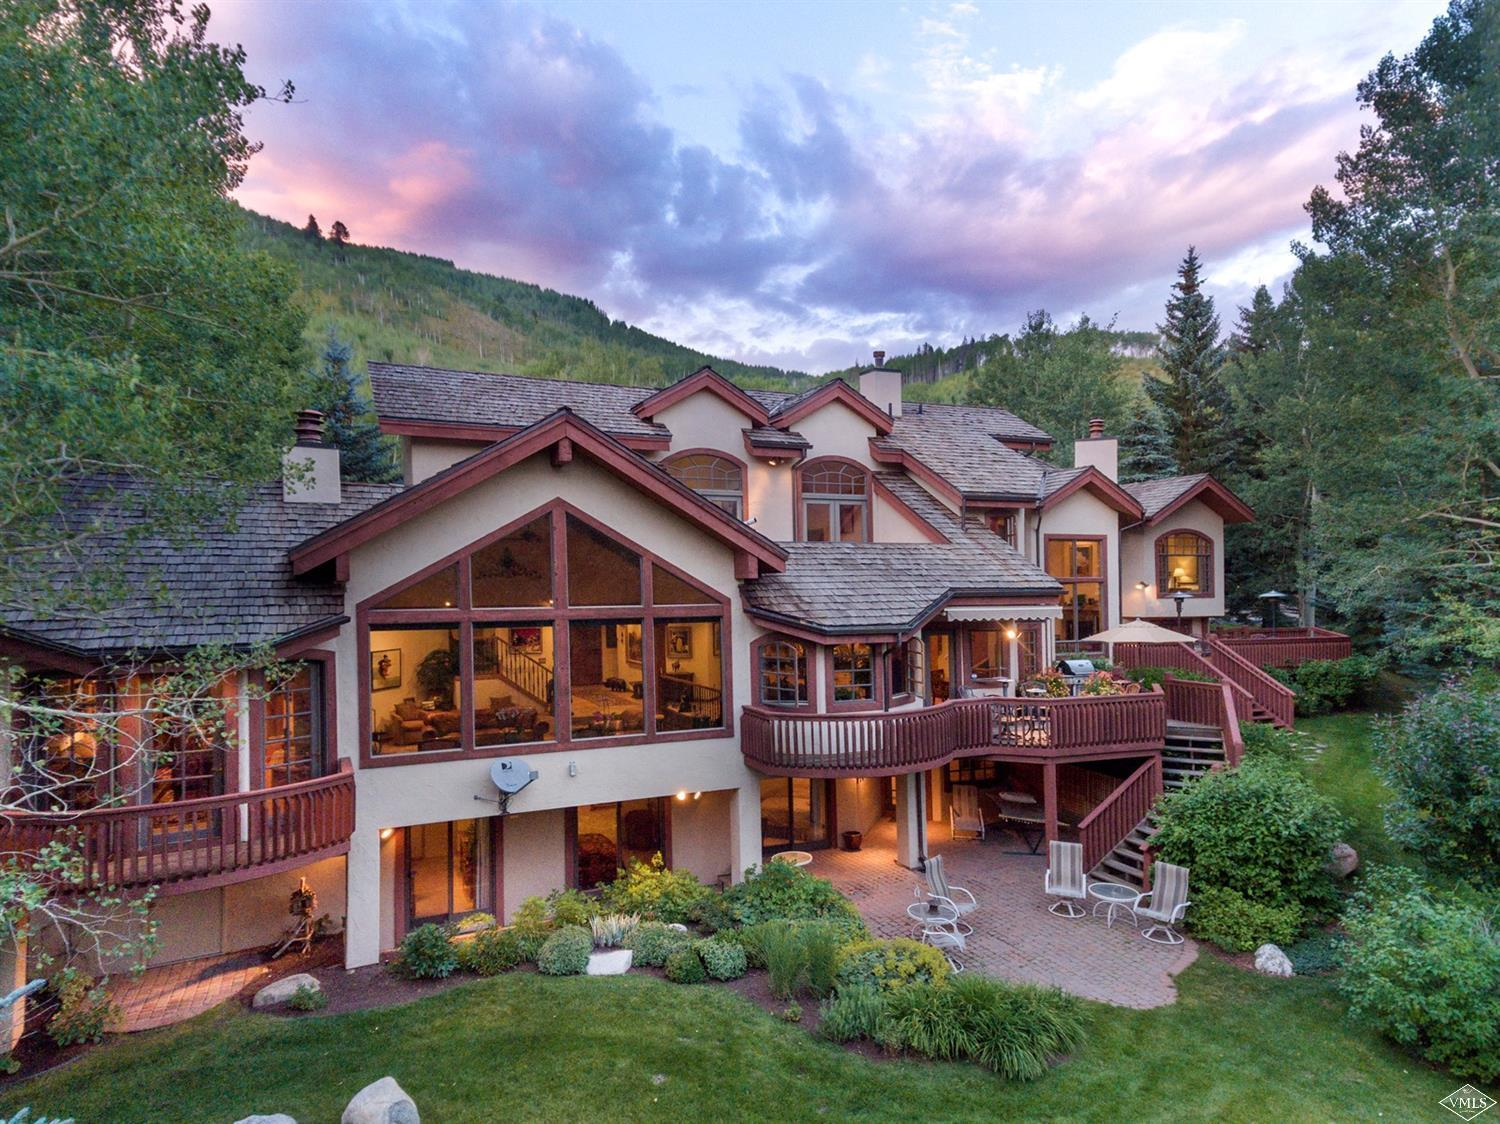 This impressive nod to a European chalet is fitted with ample windows to let in an abundance of sunlight throughout this spacious south-facing home. Expansive 7,038 SF property creates a relaxing environment to entertain generations. Bask in outstanding ski slope views from your grand living areas and multiple wooden decks. The nicely landscaped flat backyard is ideal for a game of croquet. A connected guest house creates the ability to share your home with guests while offering them privacy.